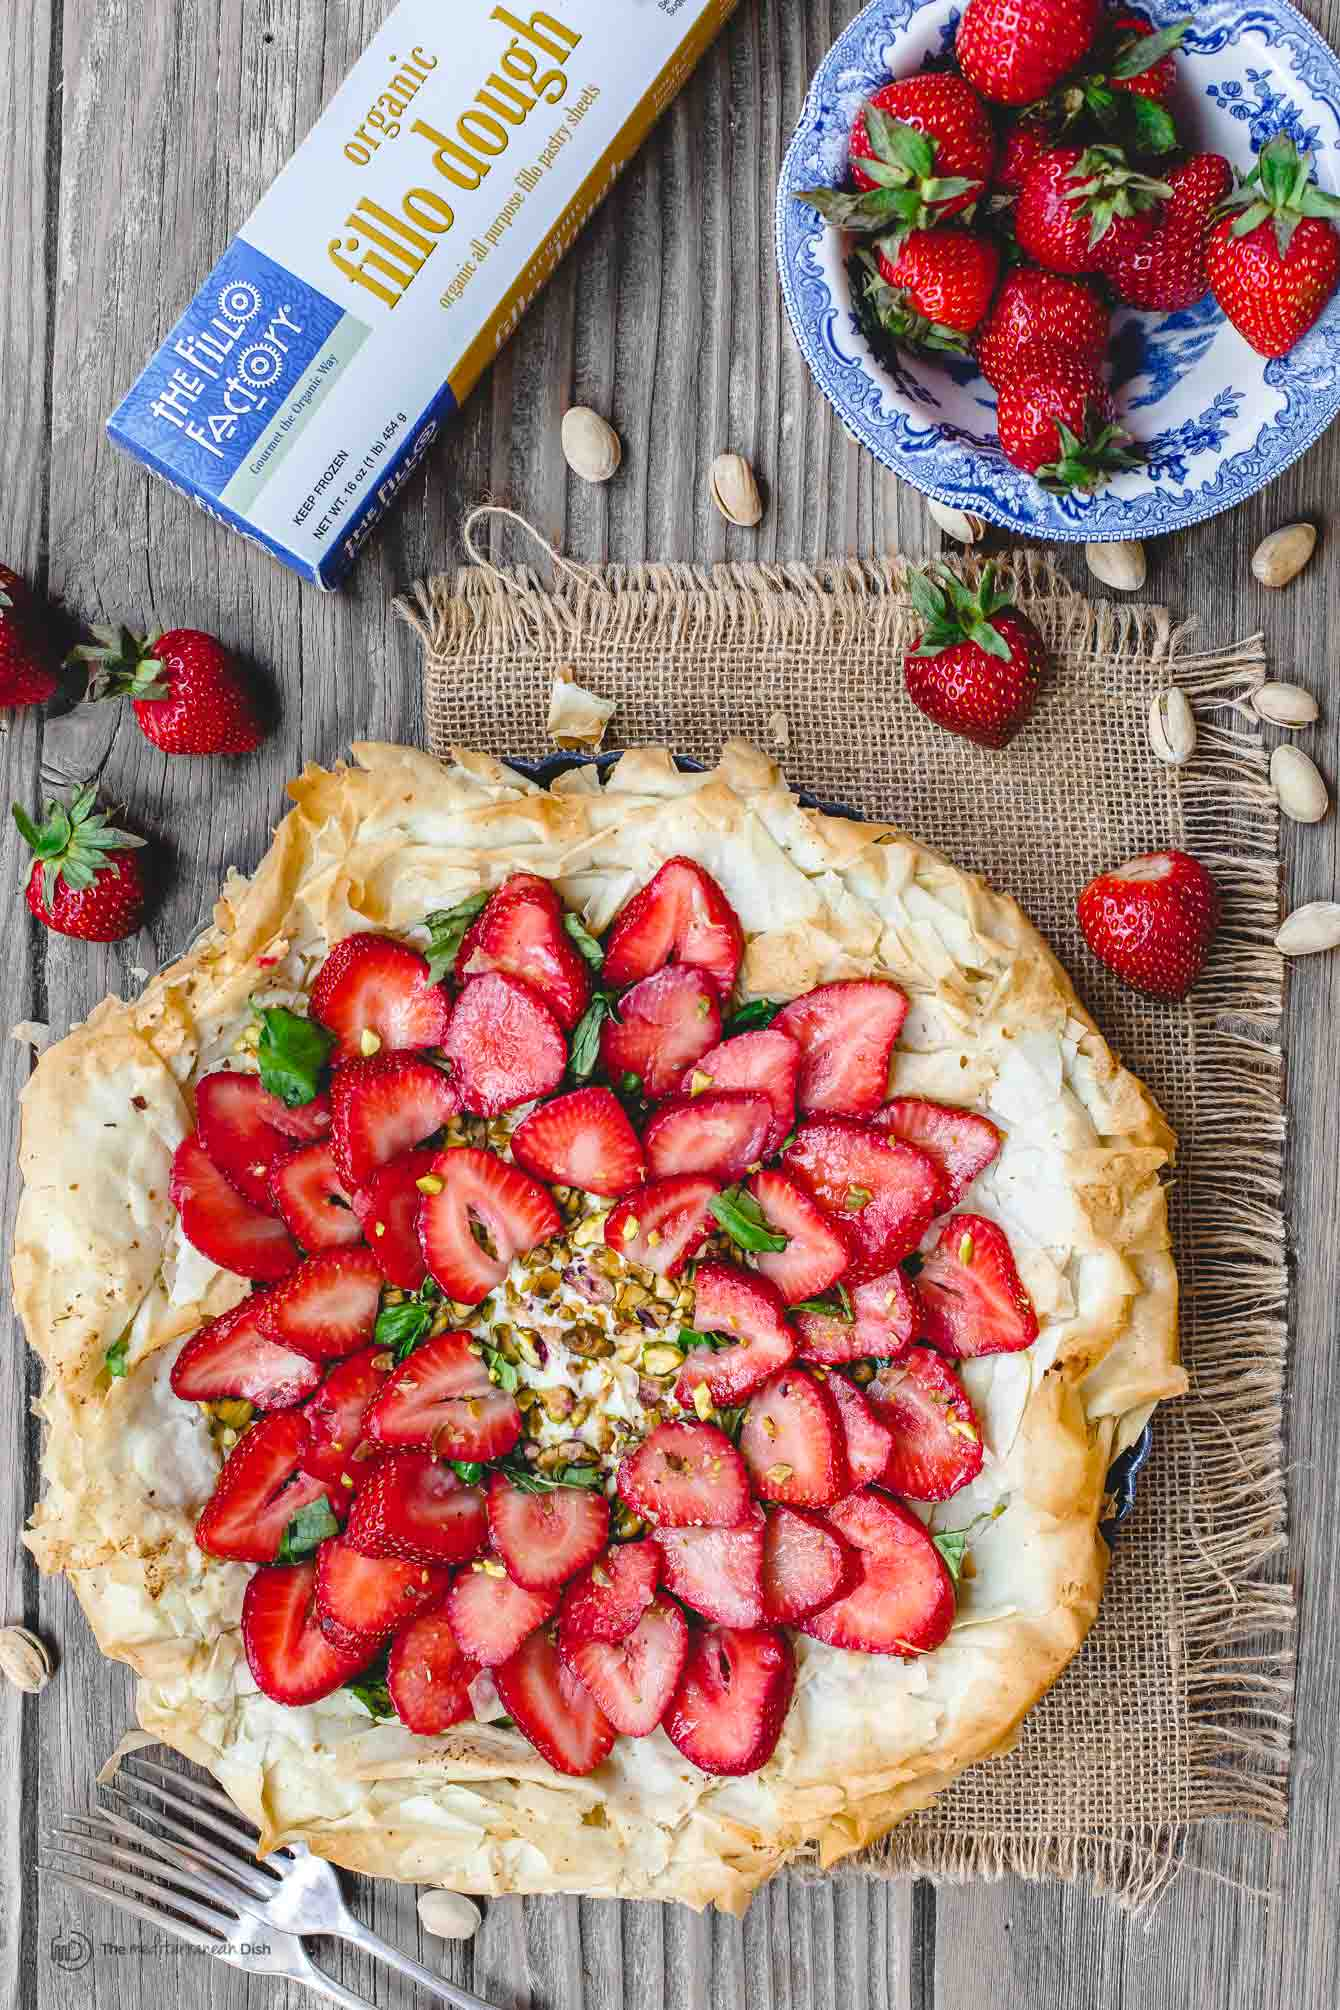 Feta Strawberry Tart with bowl of fresh strawberries on the side